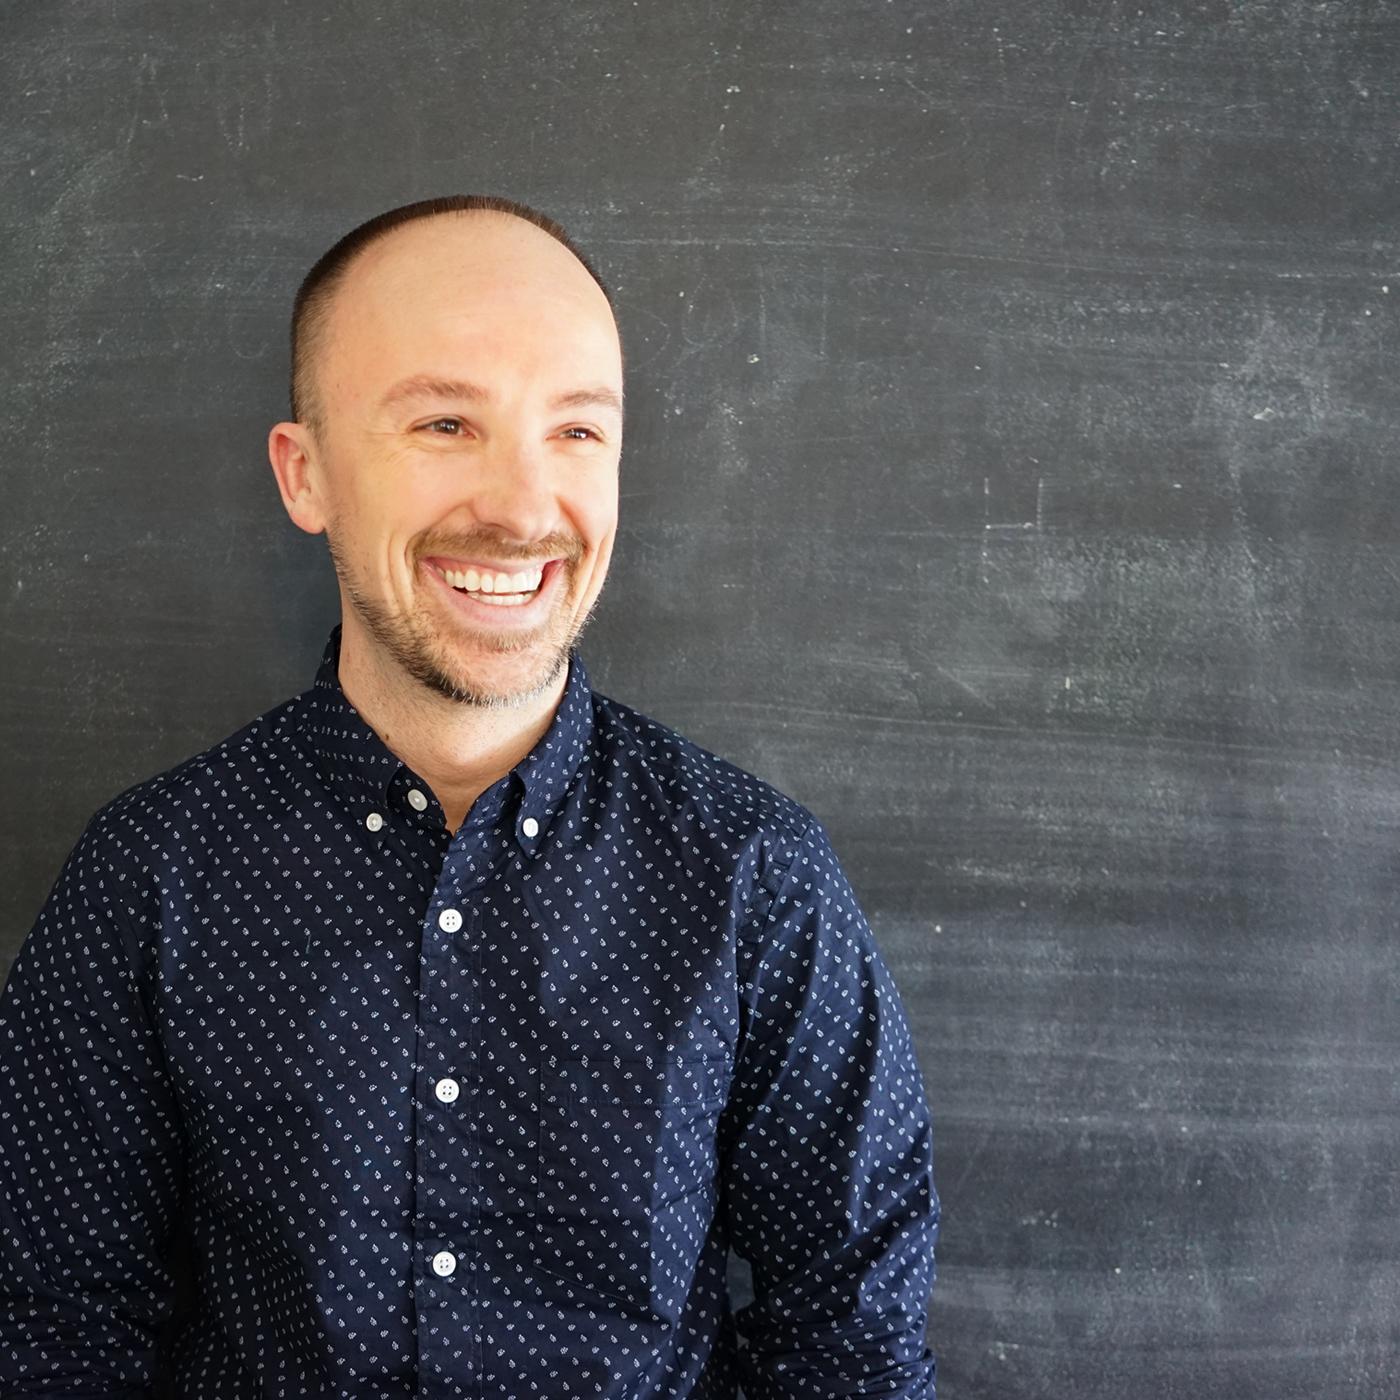 David Malamud, Brand Director - David has moved from being a great partner to a great friend. He has as much passion for what we do as we do. It is a pleasure to work with David and we look to many more years with him.- Omar (client since 2018)